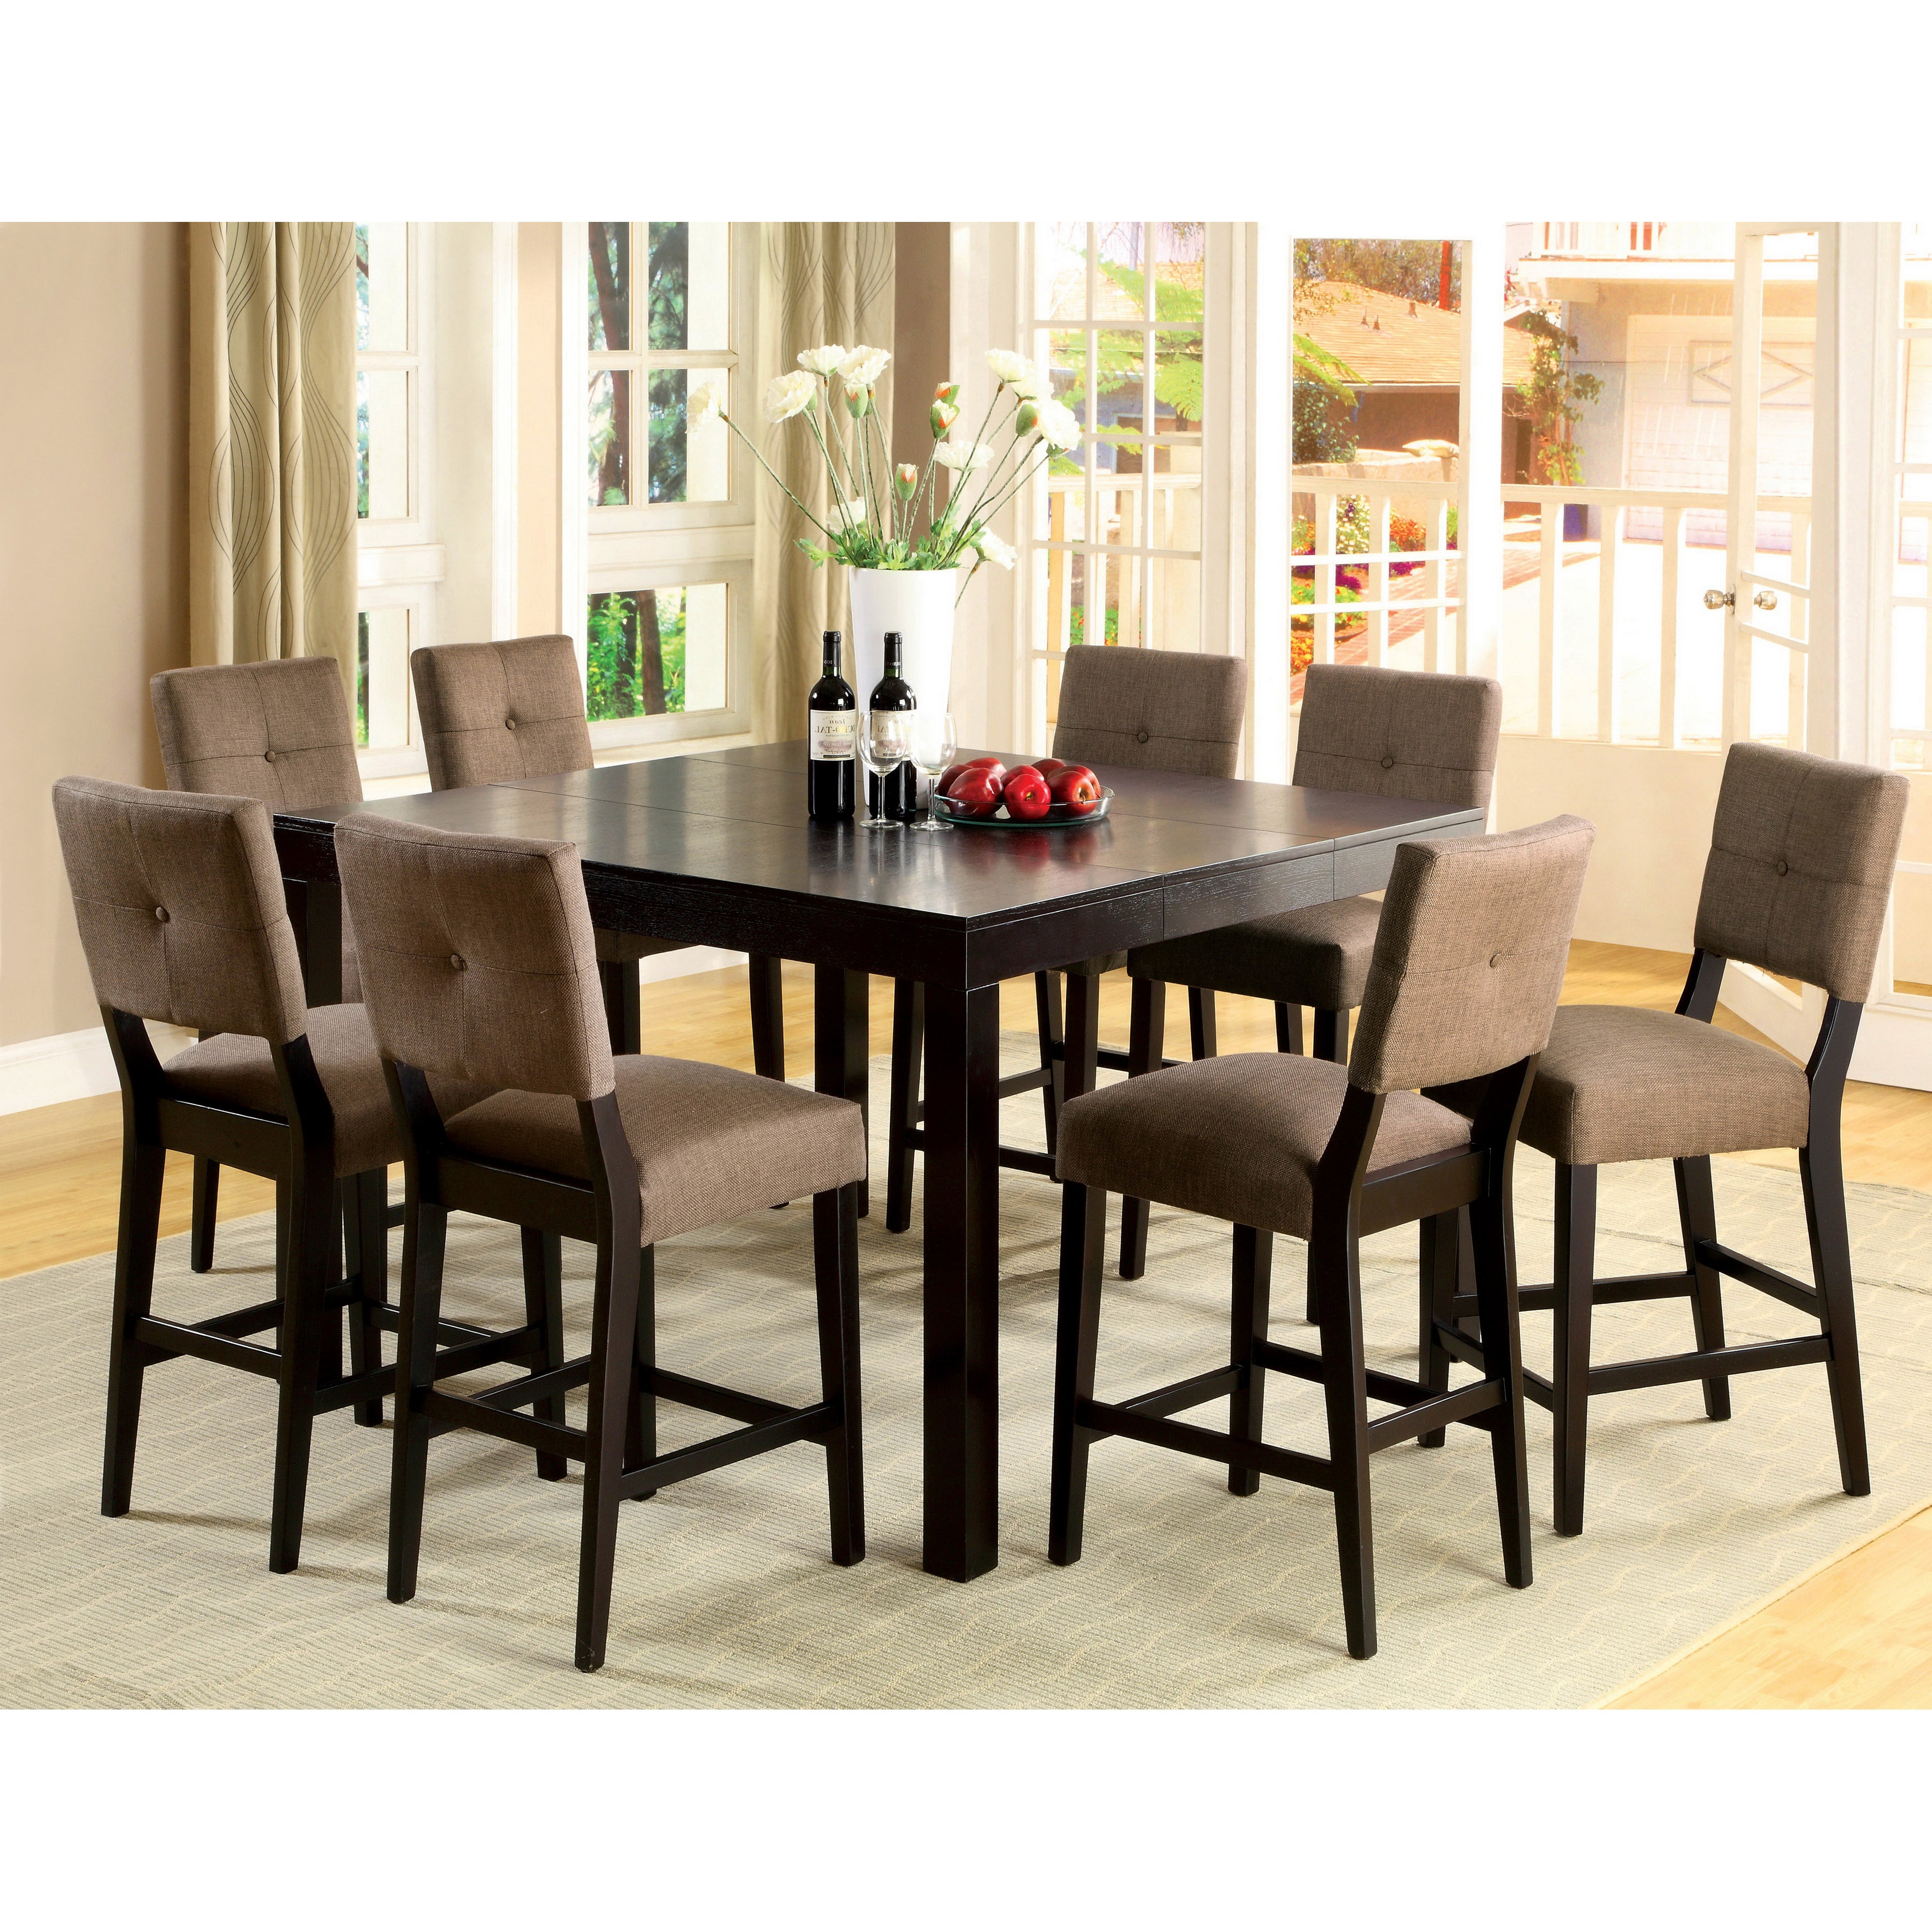 Shop Furniture Of America Catherine Espresso Counter Height Dining Throughout Trendy Wallflower 3 Piece Dining Sets (View 4 of 25)